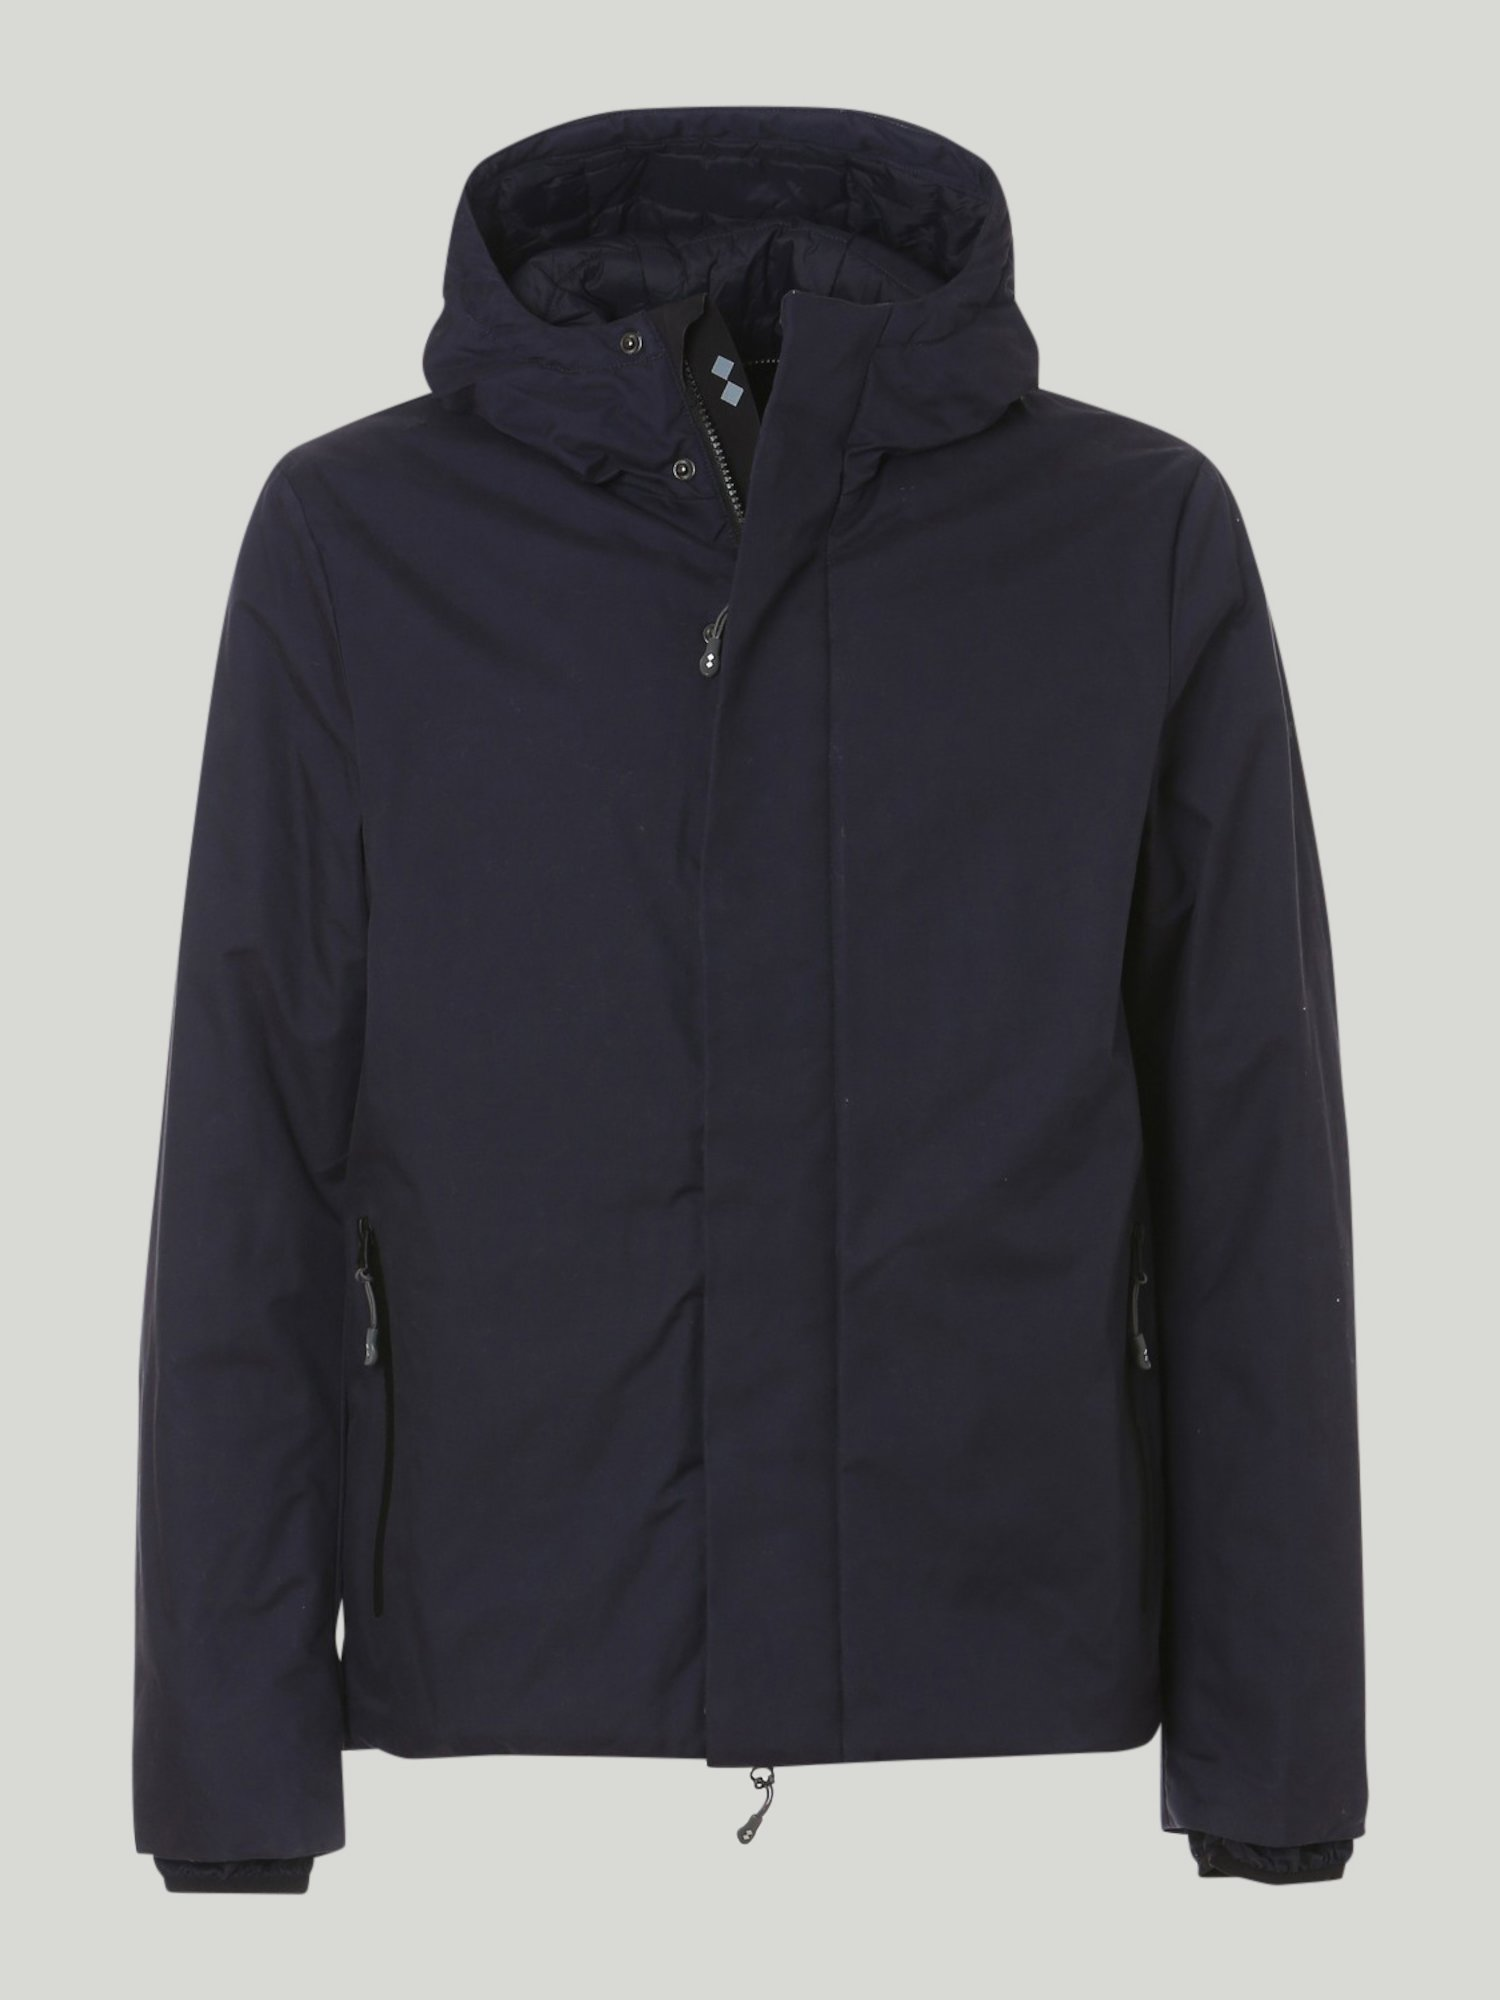 JACKET KADAVU - Navy Blue